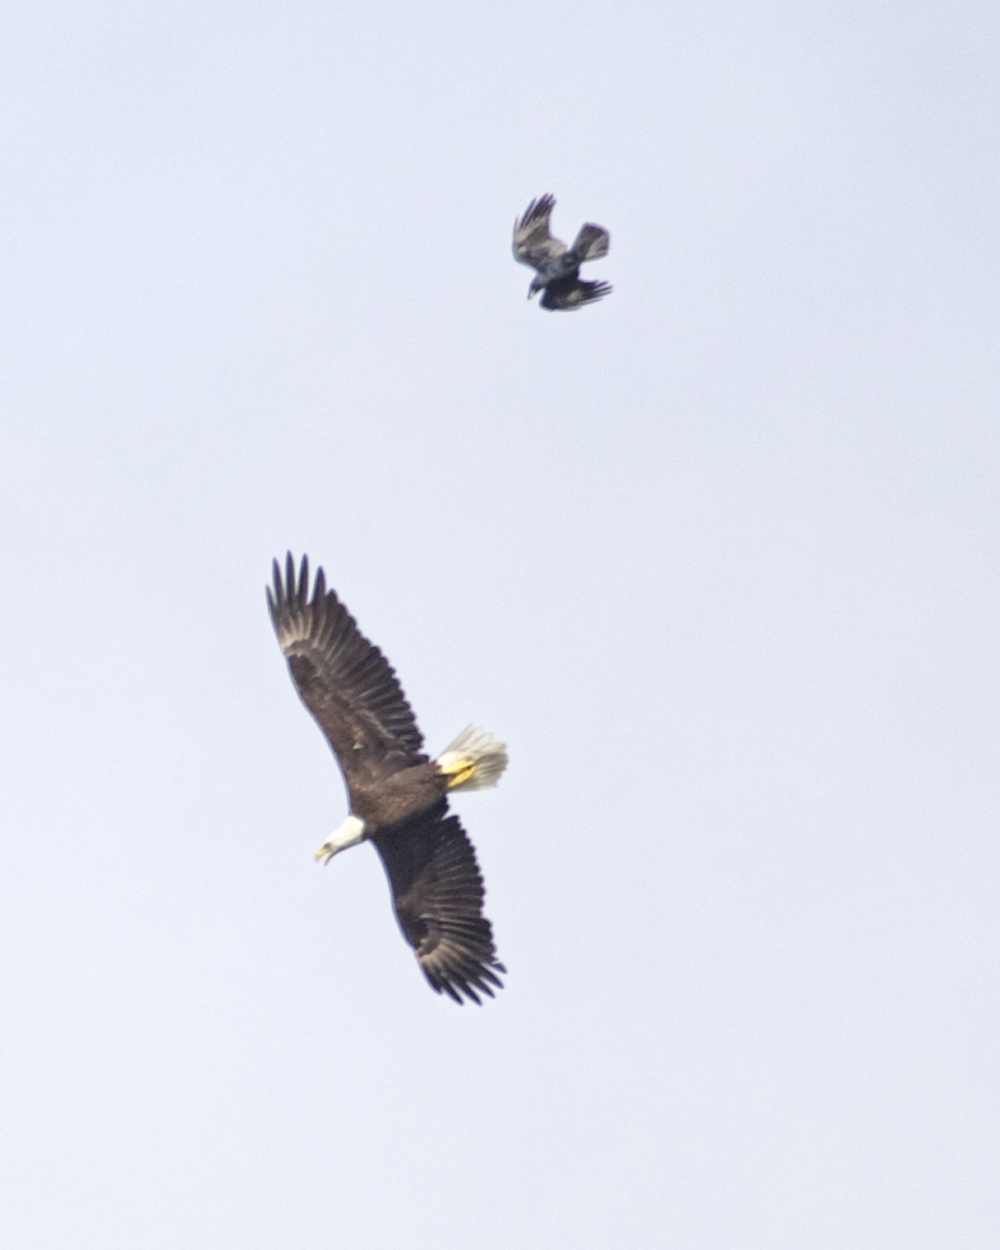 A pesky crow escorts the Bald Eagle across the Broward..